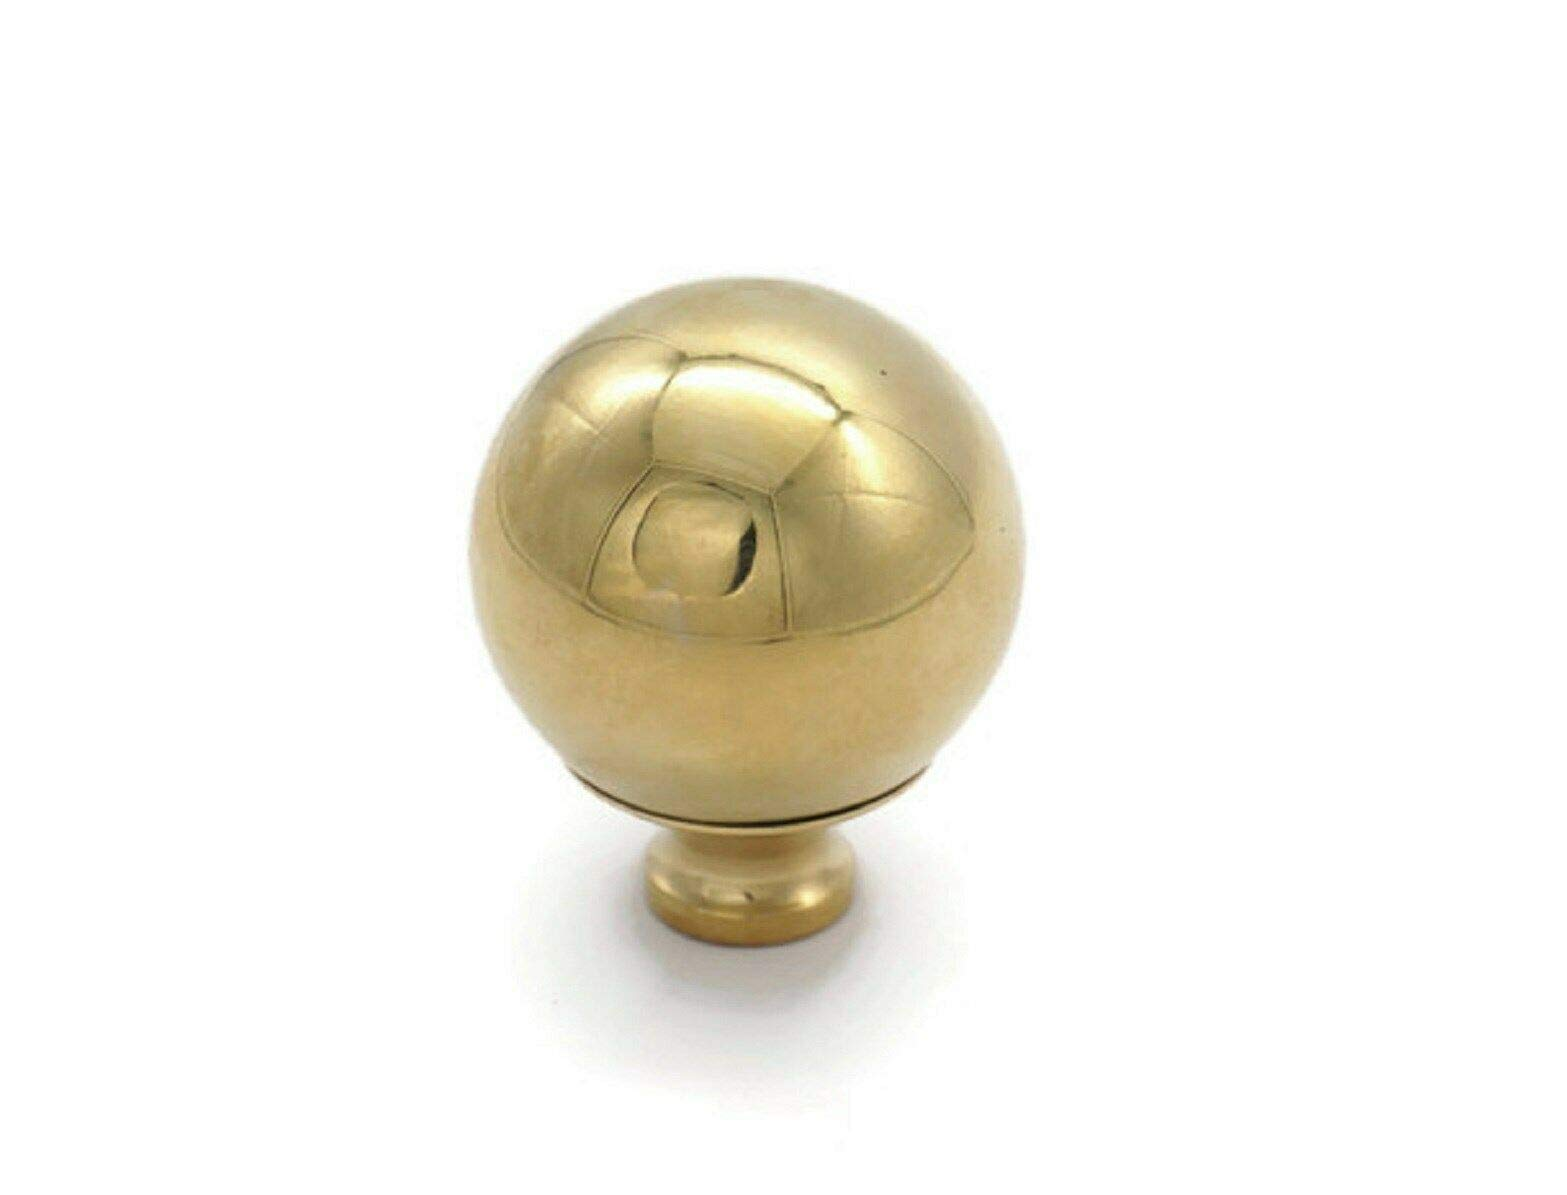 RX-789 Brass Bed Finial Cannon Ball Bed Frame 2'' Diameter X 2 1/2'' High, 3/8'' Thread